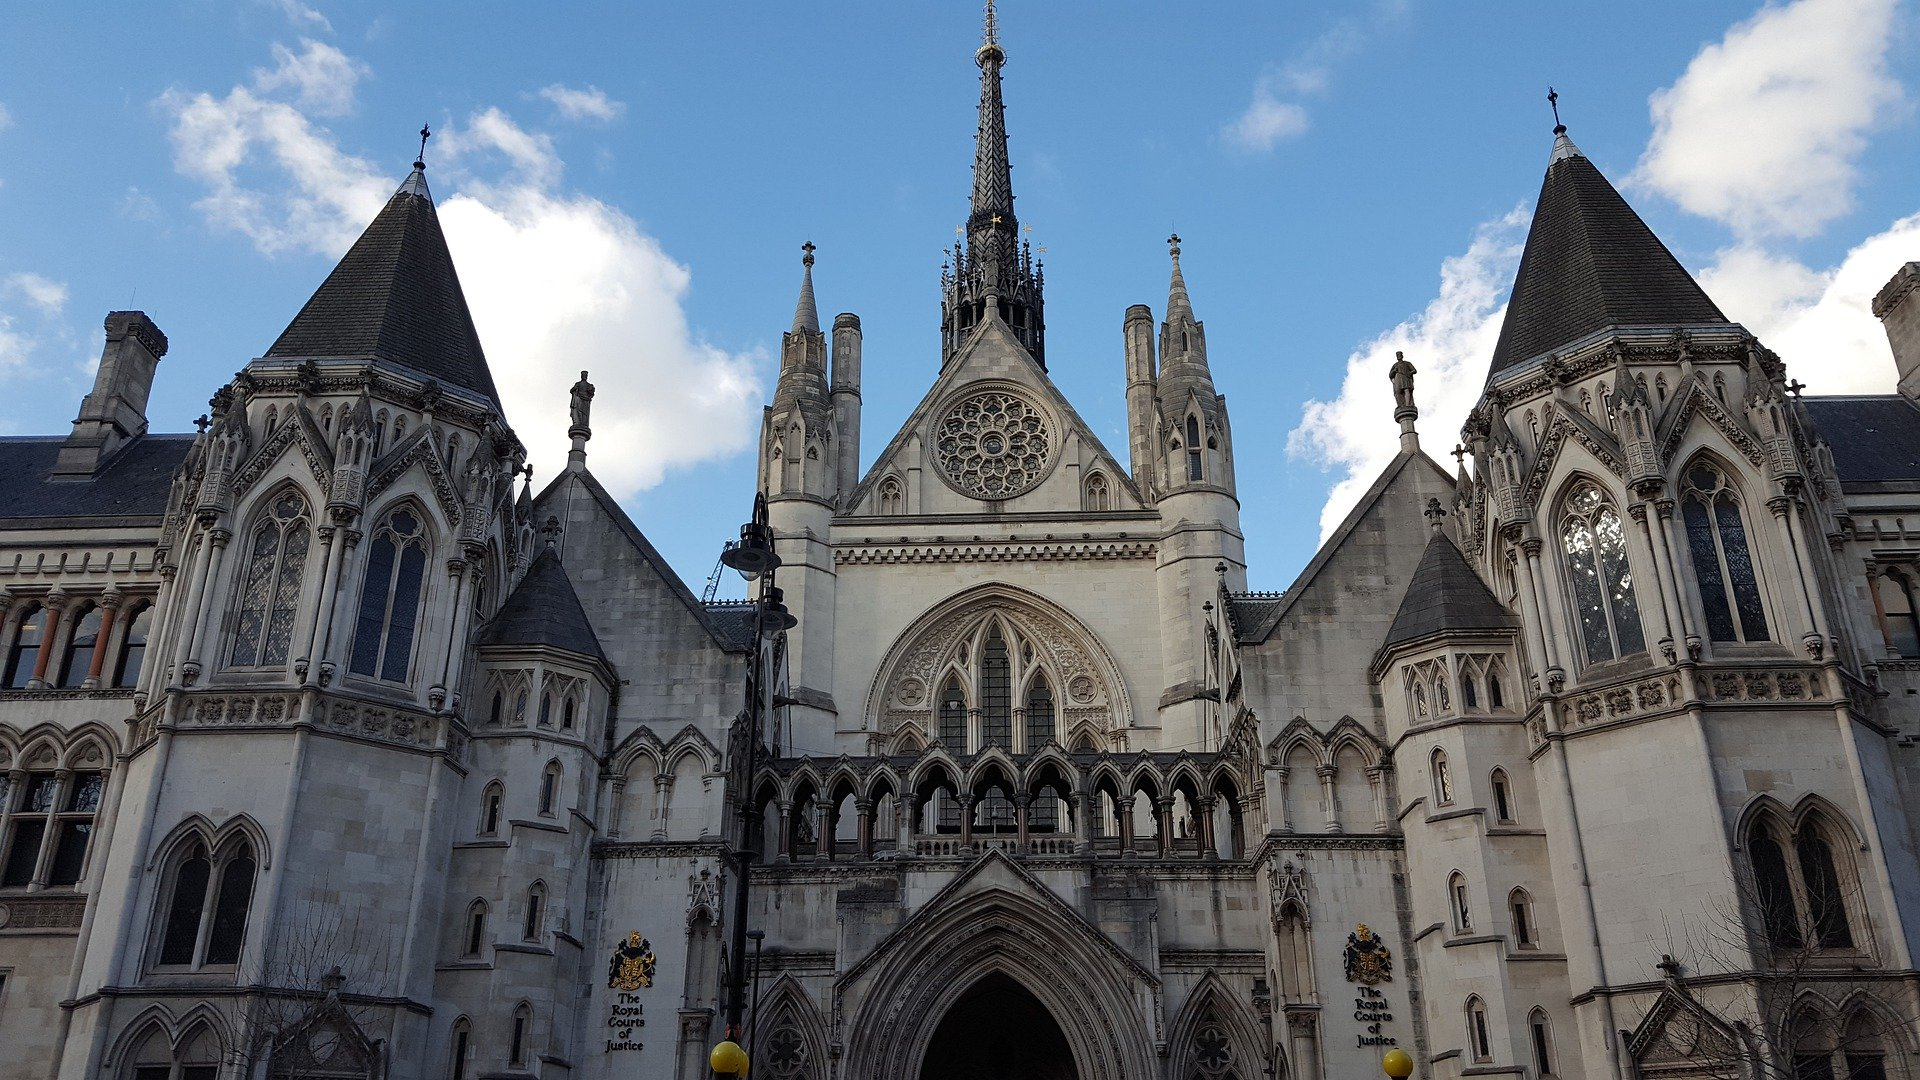 Front on view of The Royal Courts of Justice in London